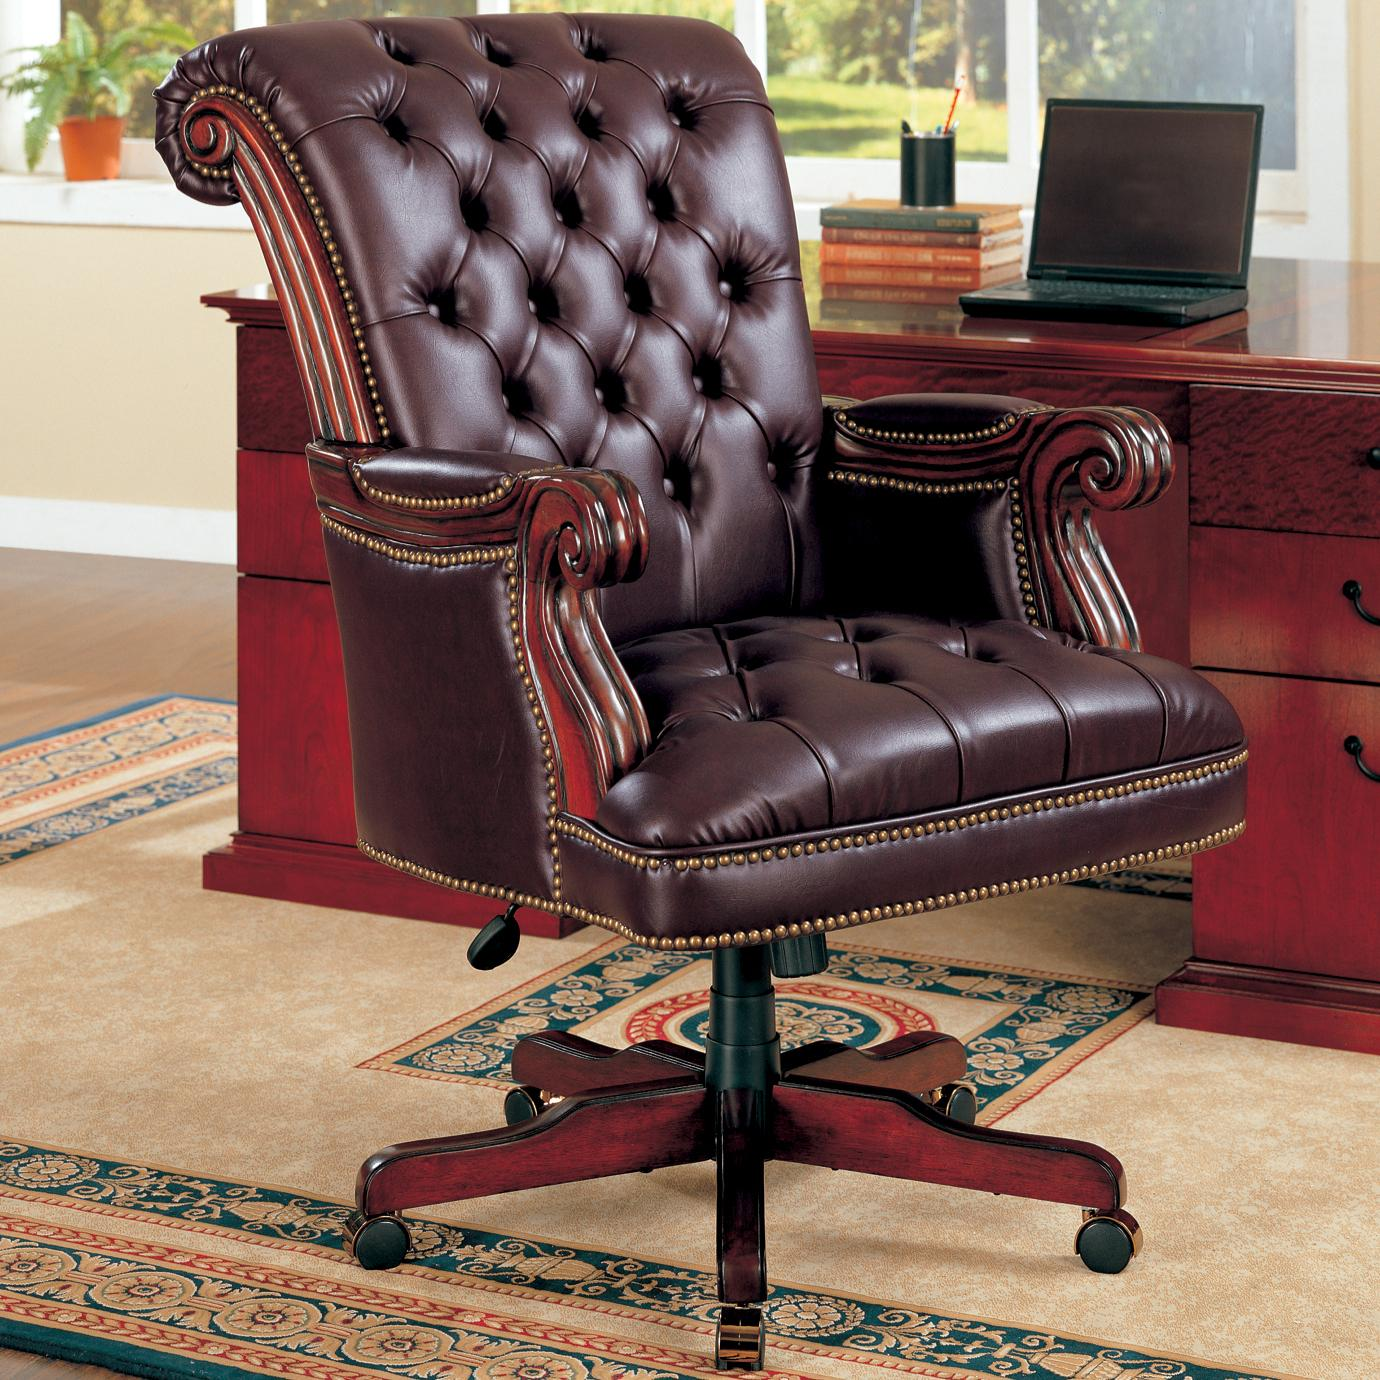 Beautiful Chairs Office Chairs Traditional Leather Executive Chair By Coaster At Dunk Bright Furniture